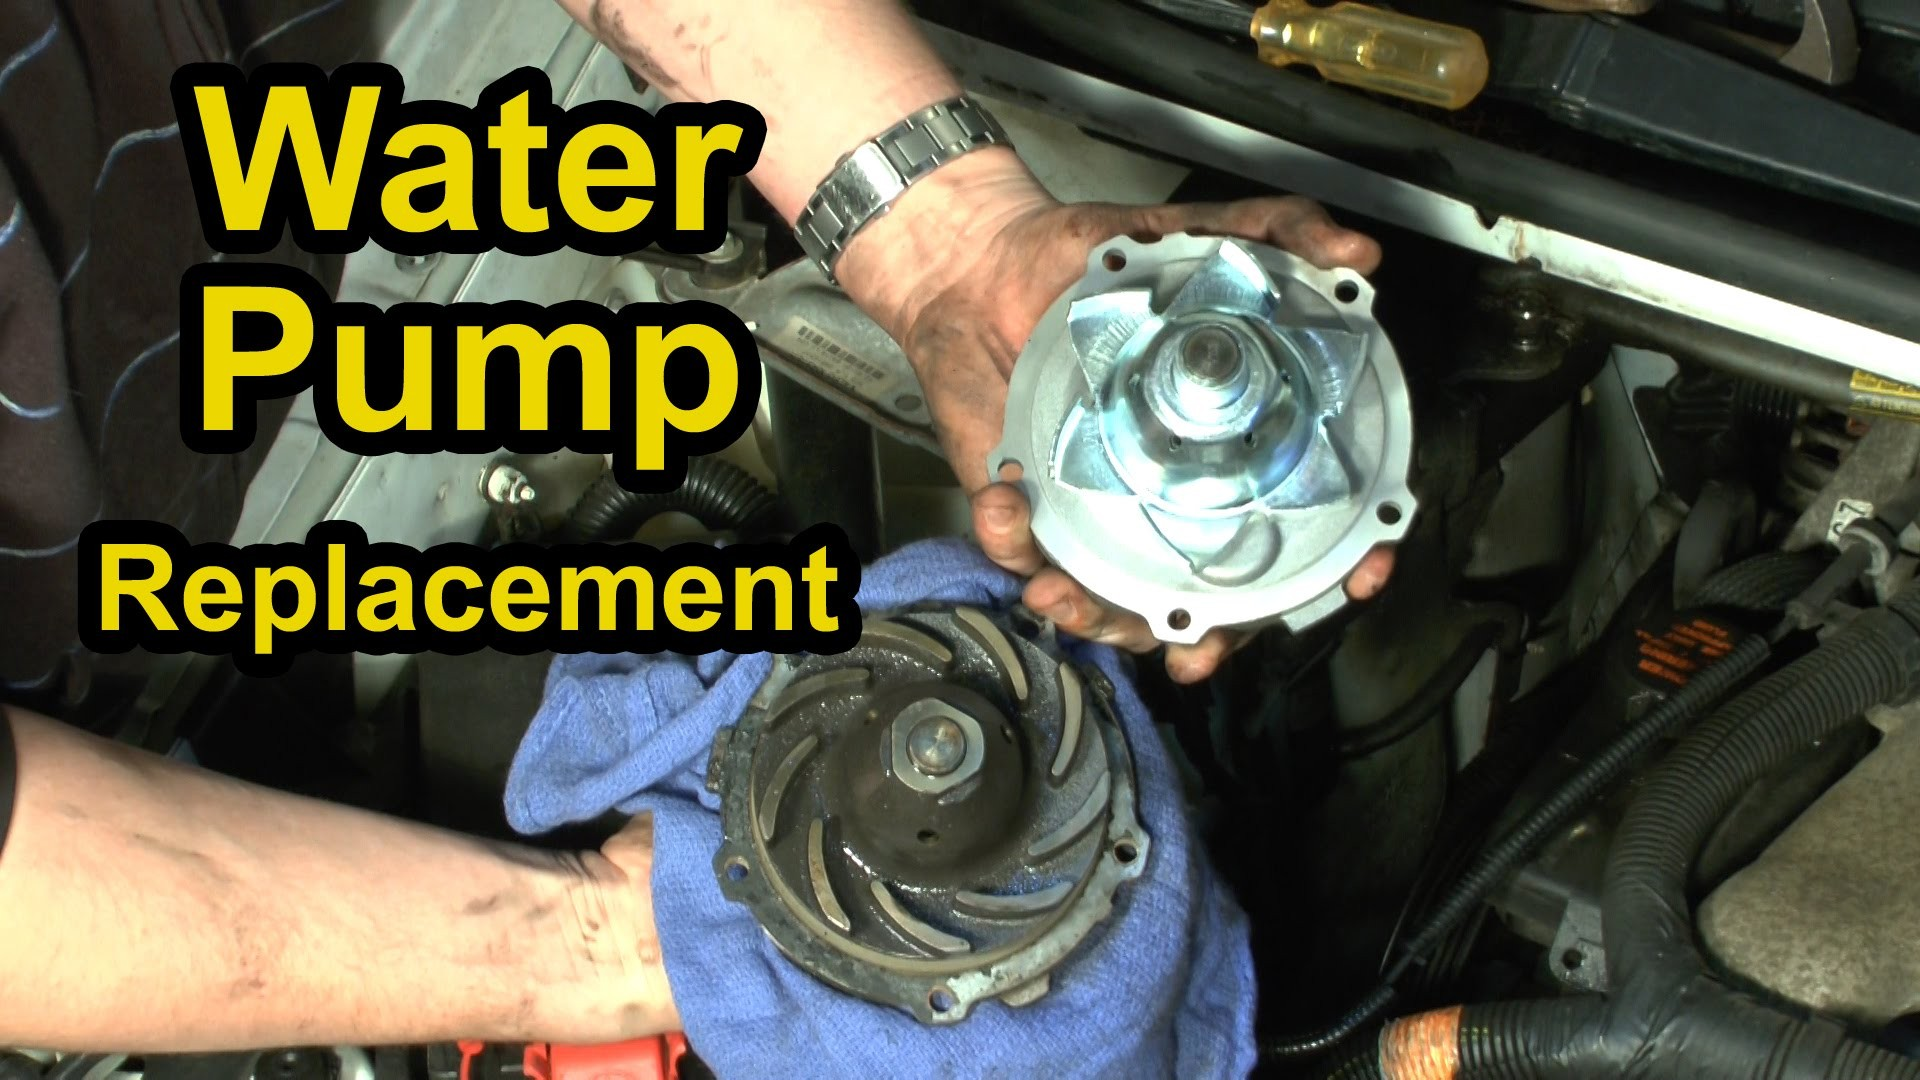 Chevy Venture Engine Diagram Water Pump Replacement Chevy 3 4l V6 Step by Step Instructions Of Chevy Venture Engine Diagram